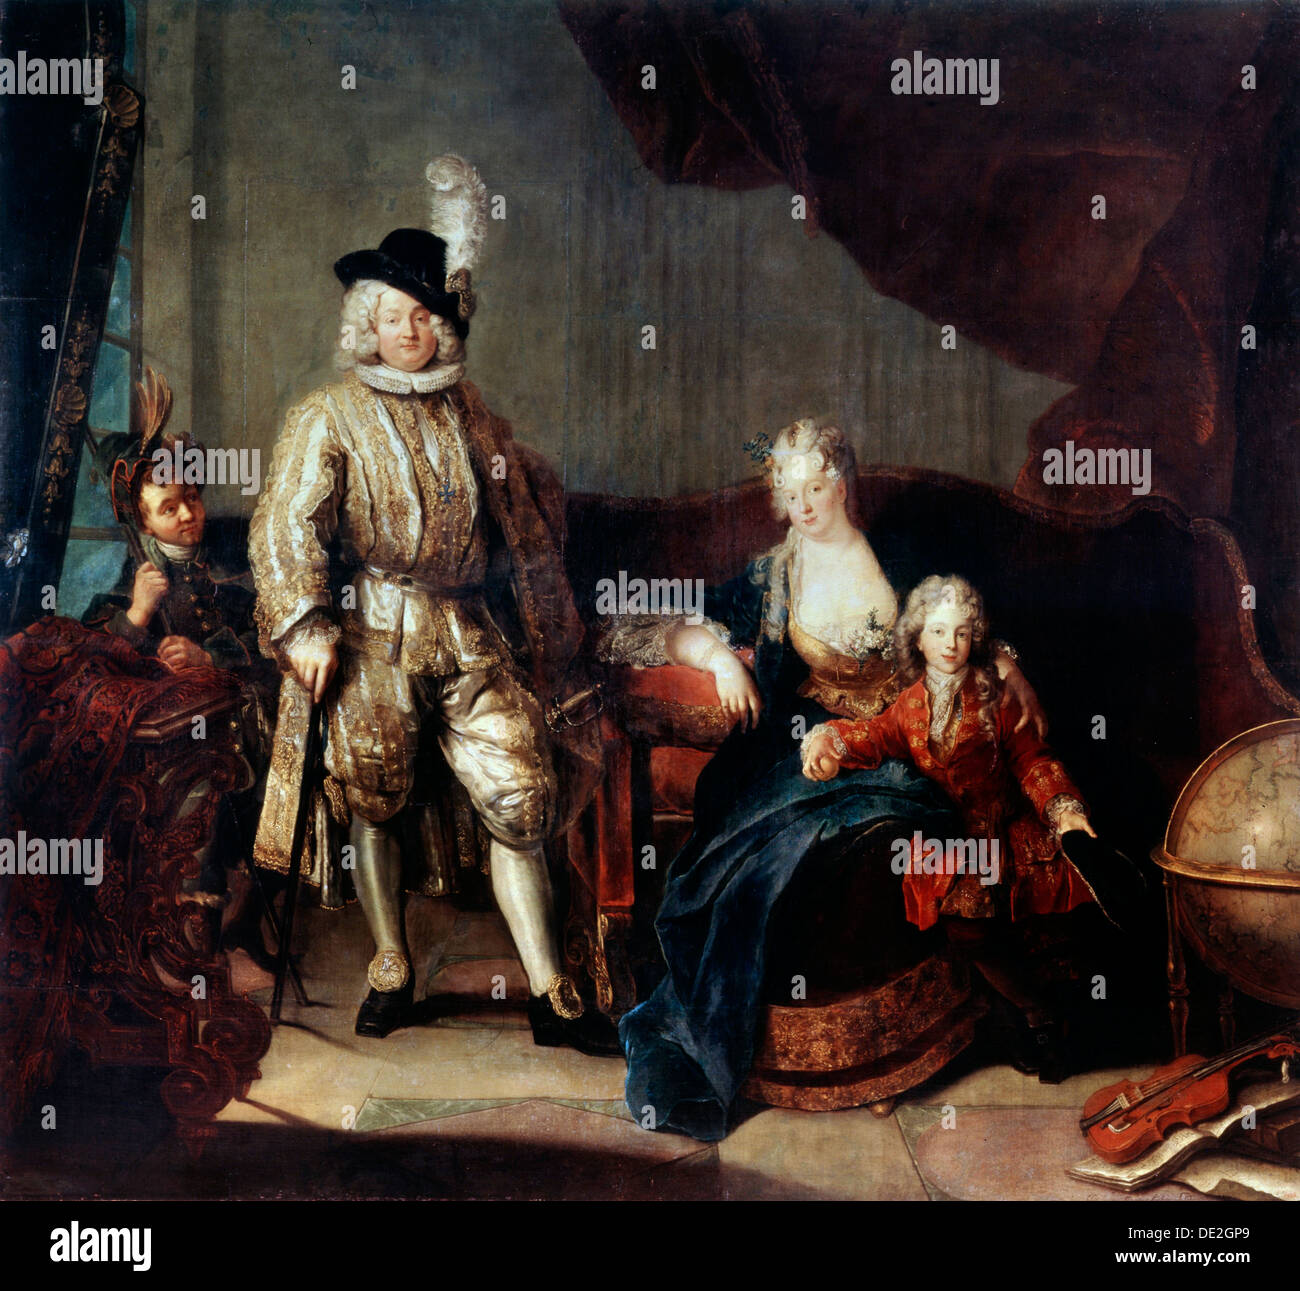 'Portrait of Baron von Erlach with his Family', c1710. Artist: Antoine Pesne - Stock Image